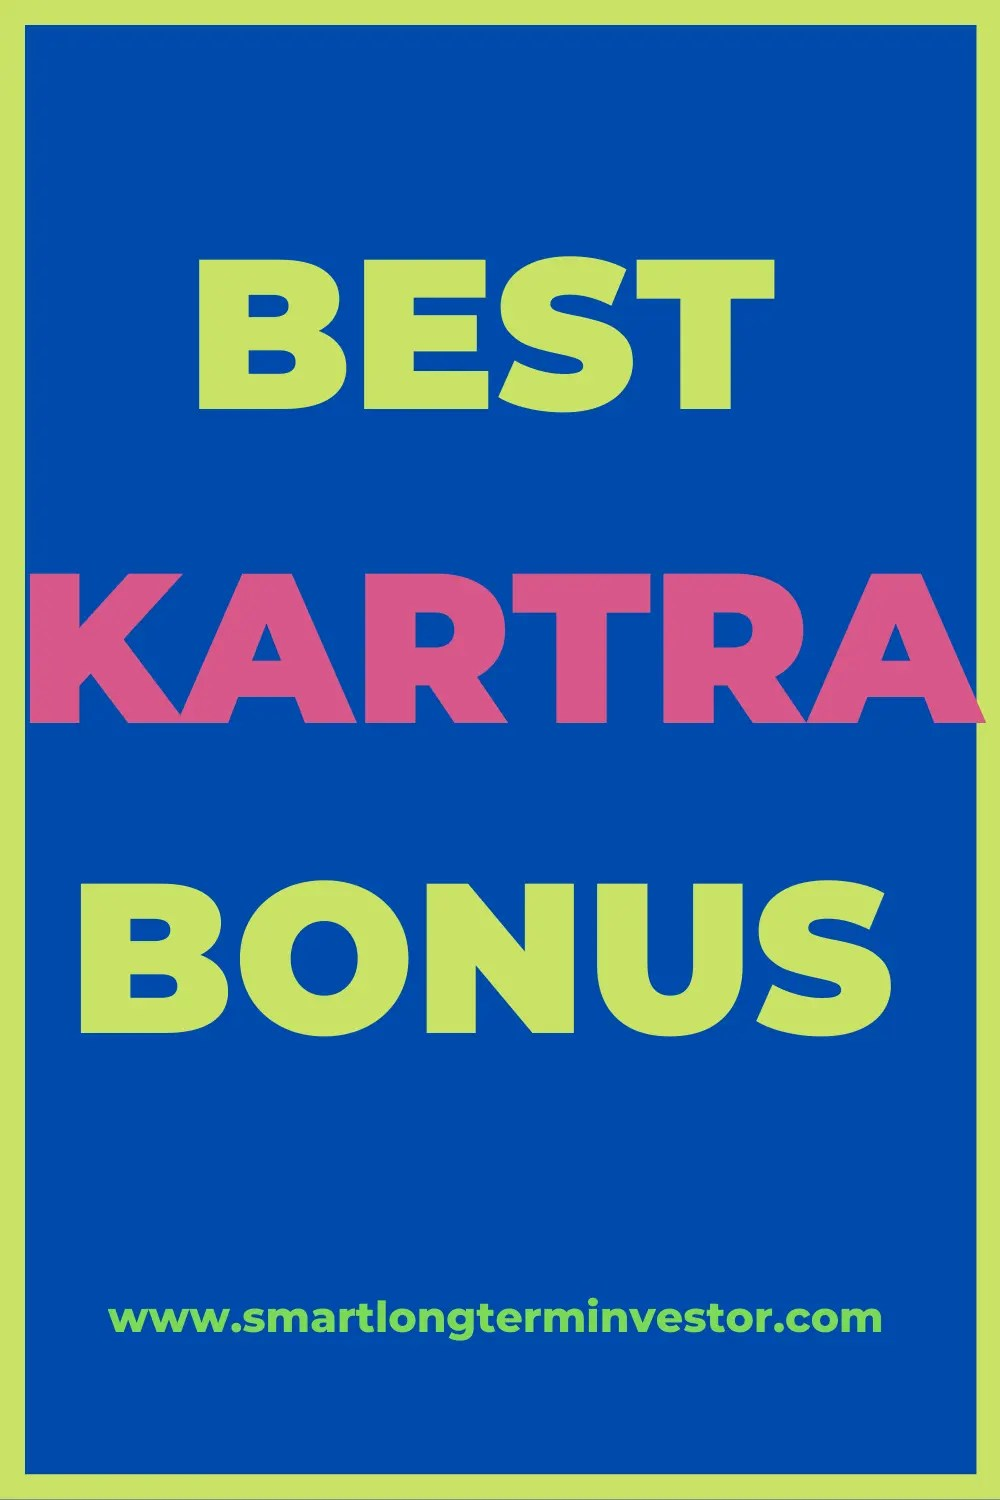 Best Kartra Bonus Package Available Today